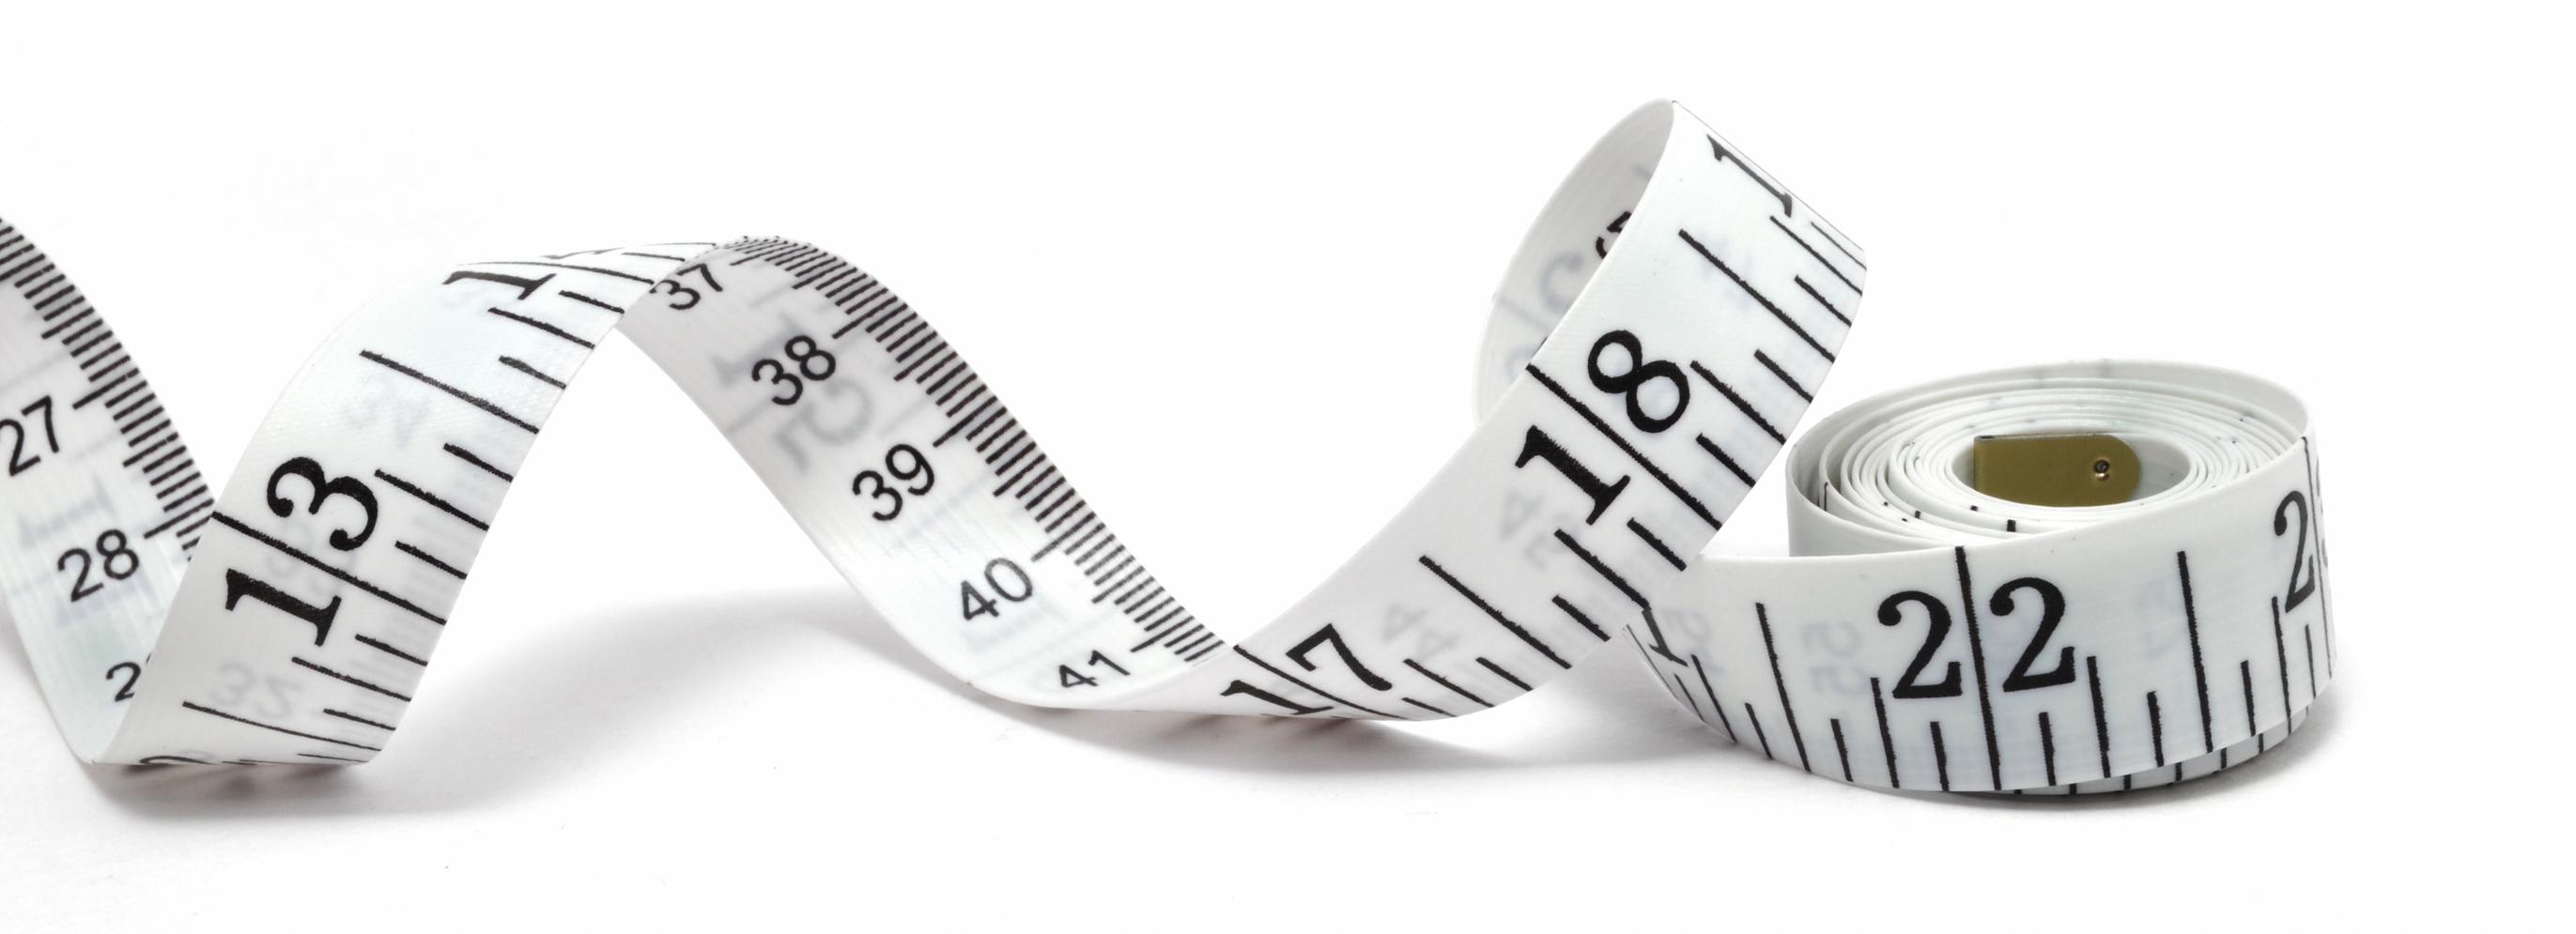 Body Tape Measure PNG - 162118